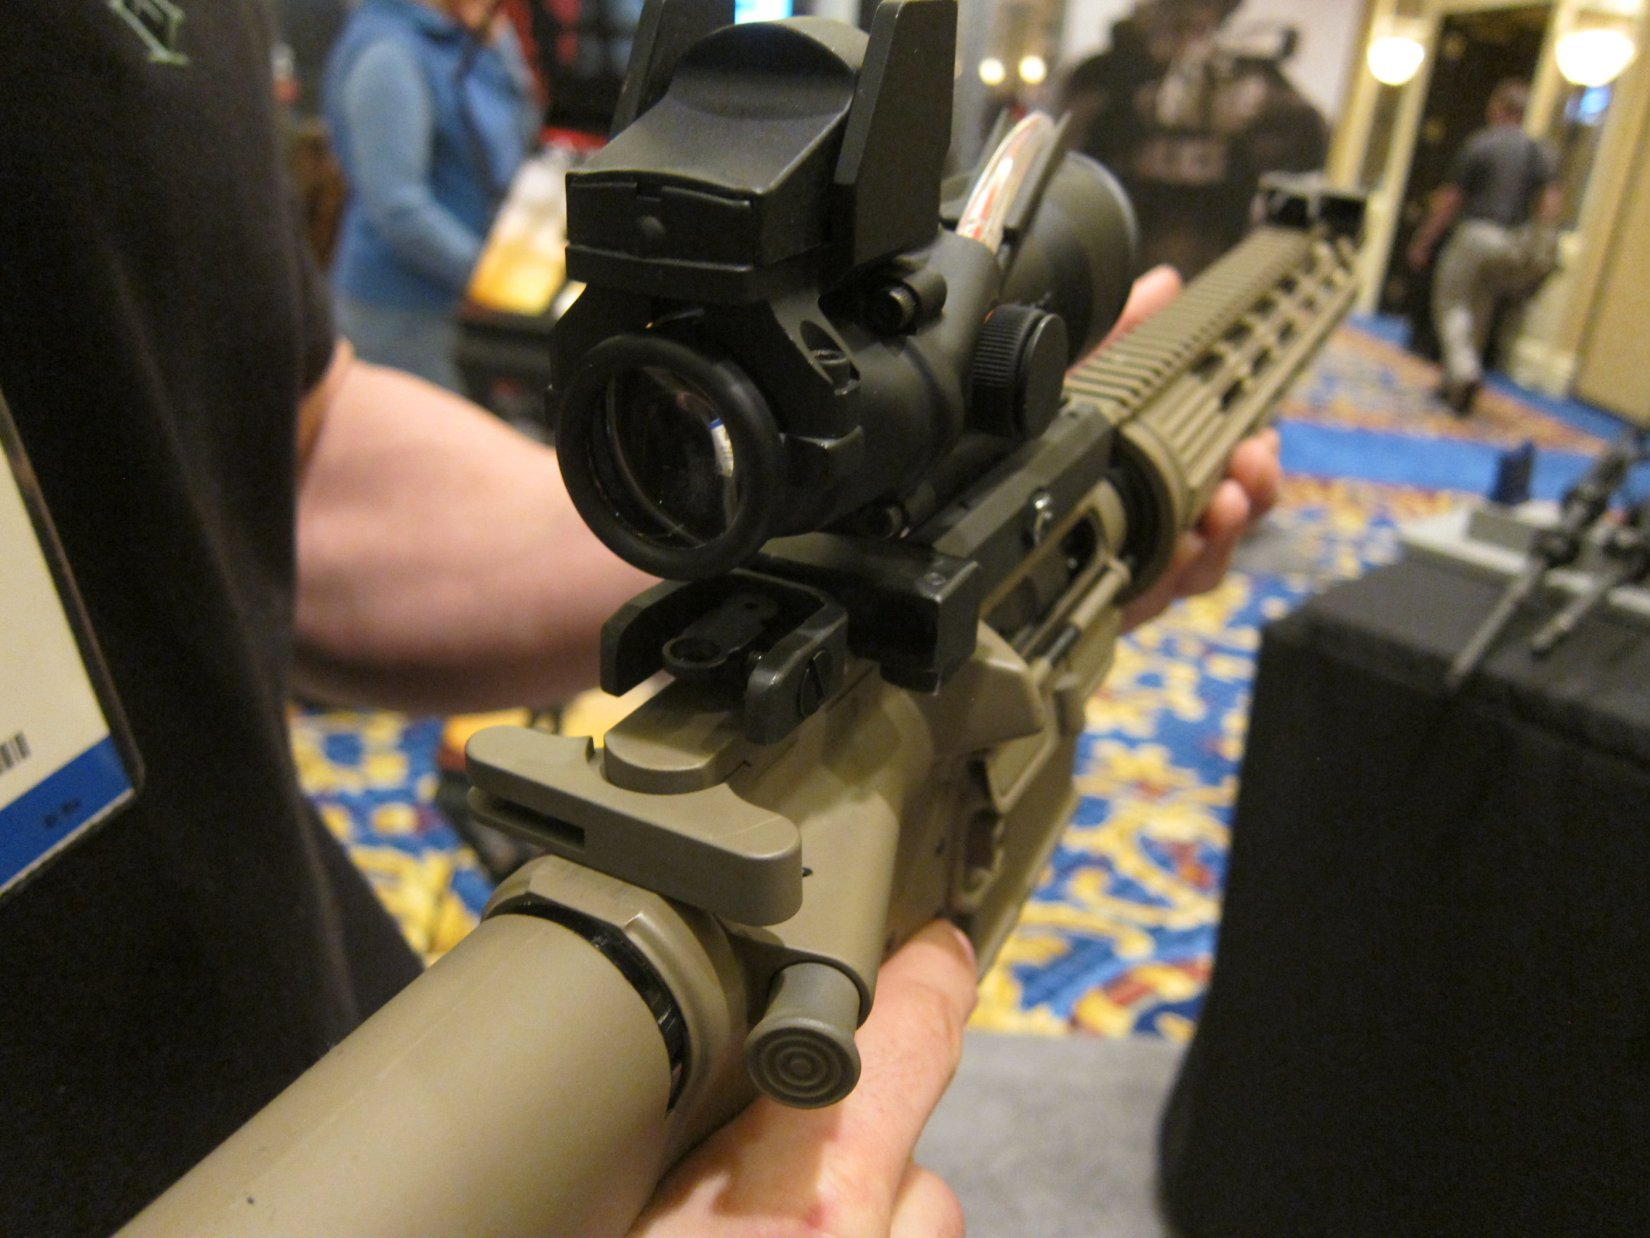 Diamondhead USA 45 Degree Offset Flip Sights BUIS Back Up Iron Sights for Tactical AR 15 Rifle Carbine SBR Sub Carbines SHOT Show 2012 DefenseReview.com DR 3 Diamondhead USA 45 Degree Offset Flip Sights/BUIS (Back Up Iron Sights) for Tactical AR 15 Rifle/Carbine/SBR/Sub Carbines